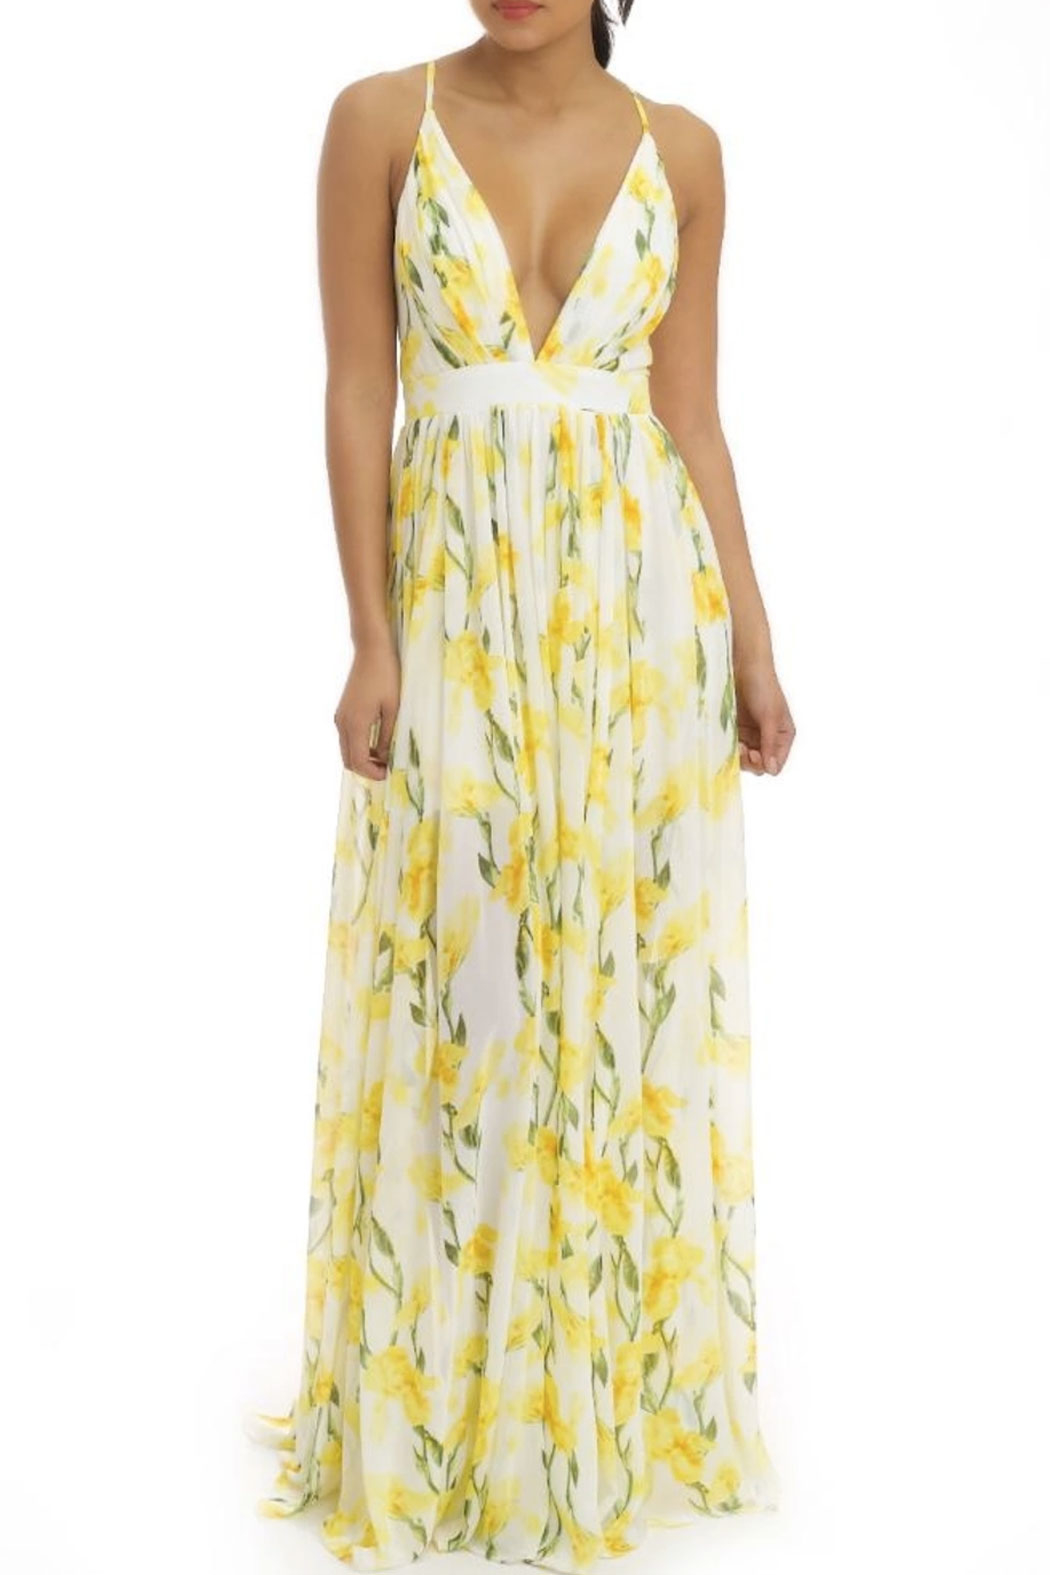 luxxel Yellow Floral Maxi - Main Image